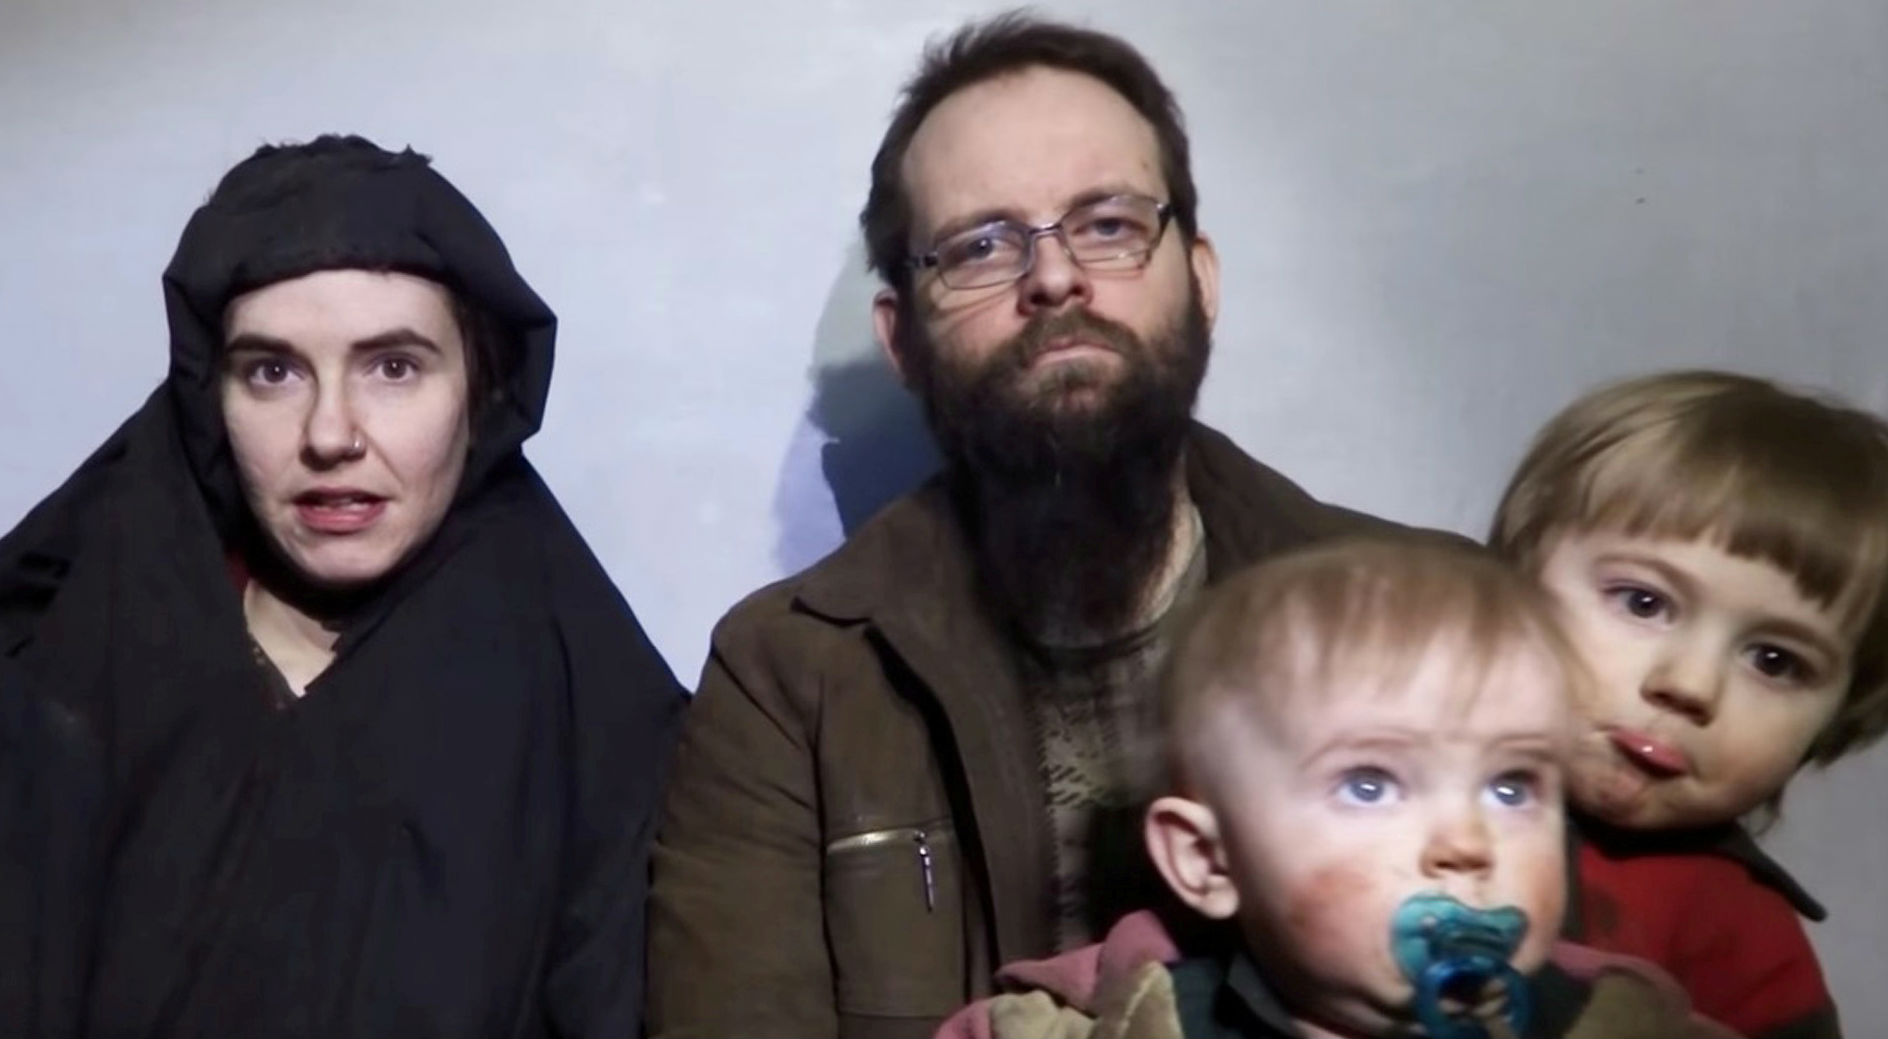 A still image from a video posted by the Taliban on social media on Dec. 19, 2016, shows American Caitlan Coleman (L) speaking next to her Canadian husband Joshua Boyle, and their two sons.